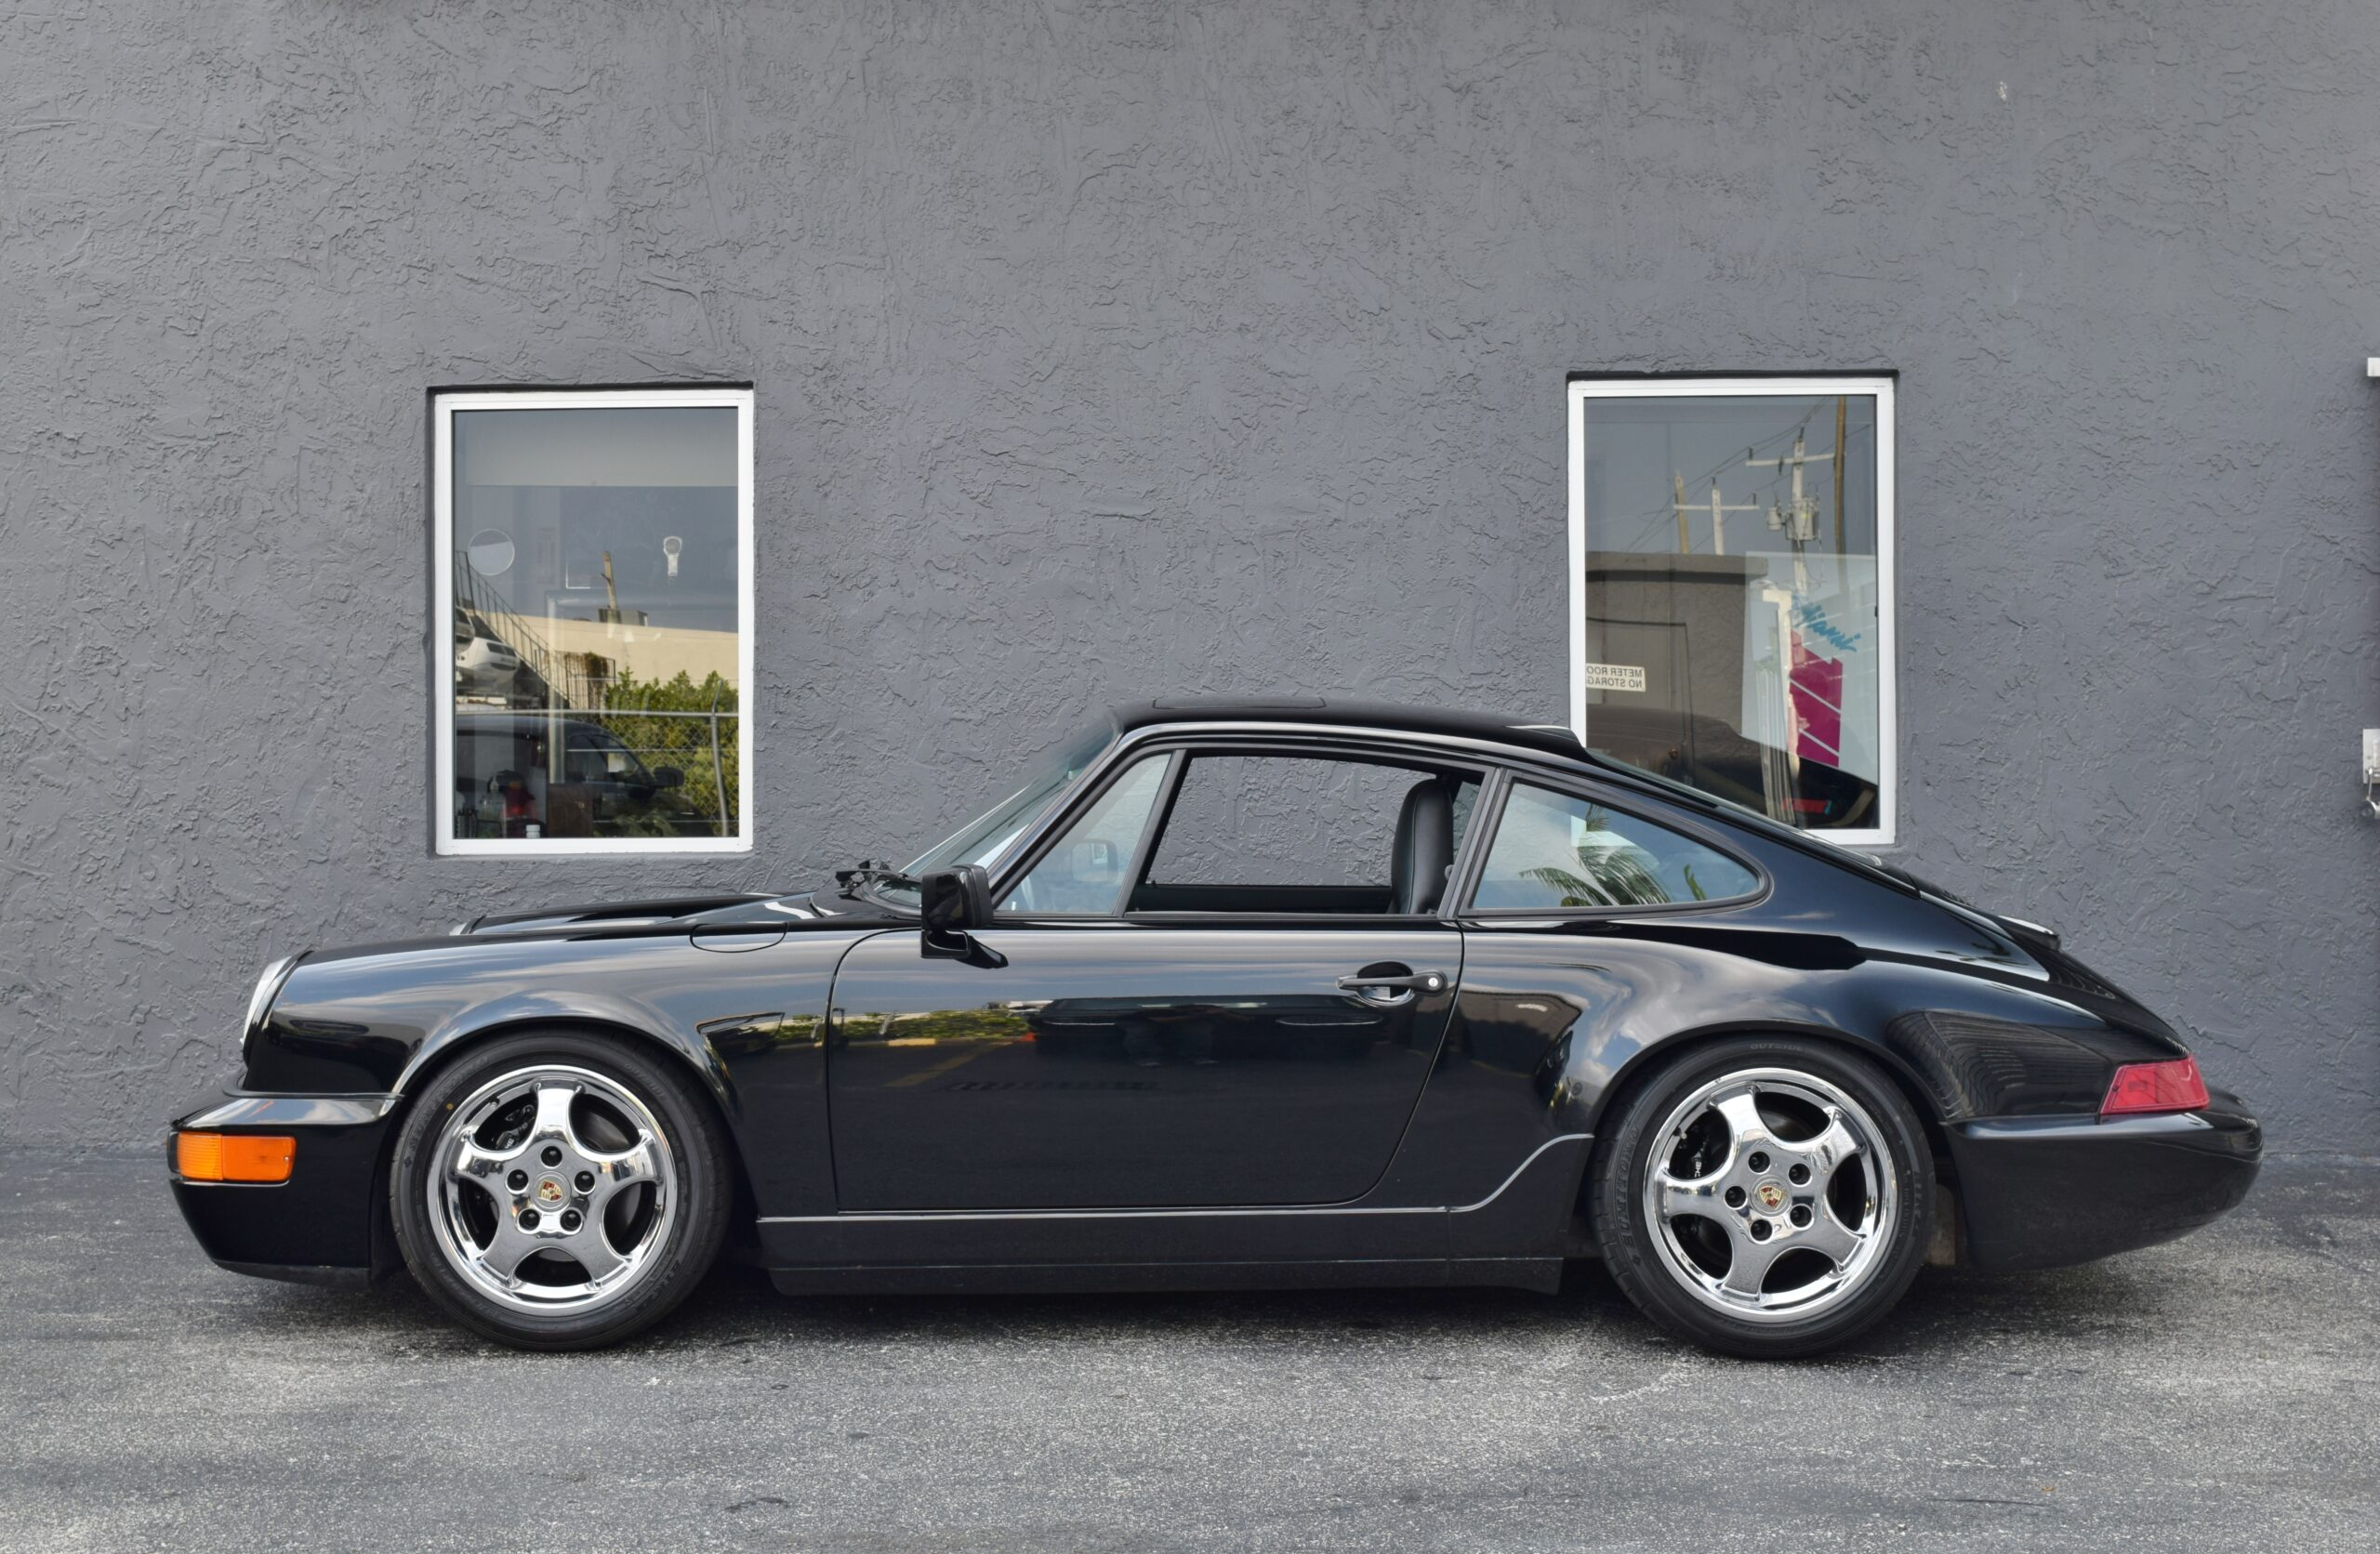 1991 Porsche 911 964 Carrera 4 Same owner for 27 years – Turbo Cup Wheels – 5 Speed – Extensive Service Records